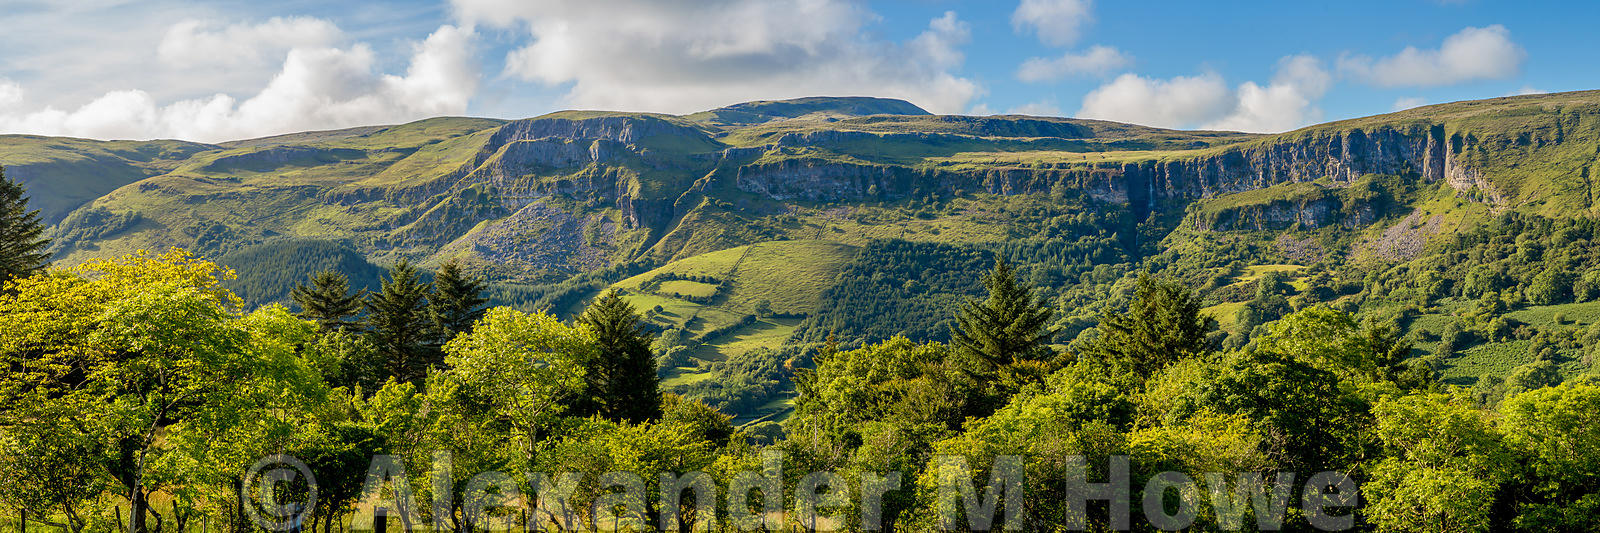 Evergreen Mountain range by Glencar in County Leitrim, Ireland